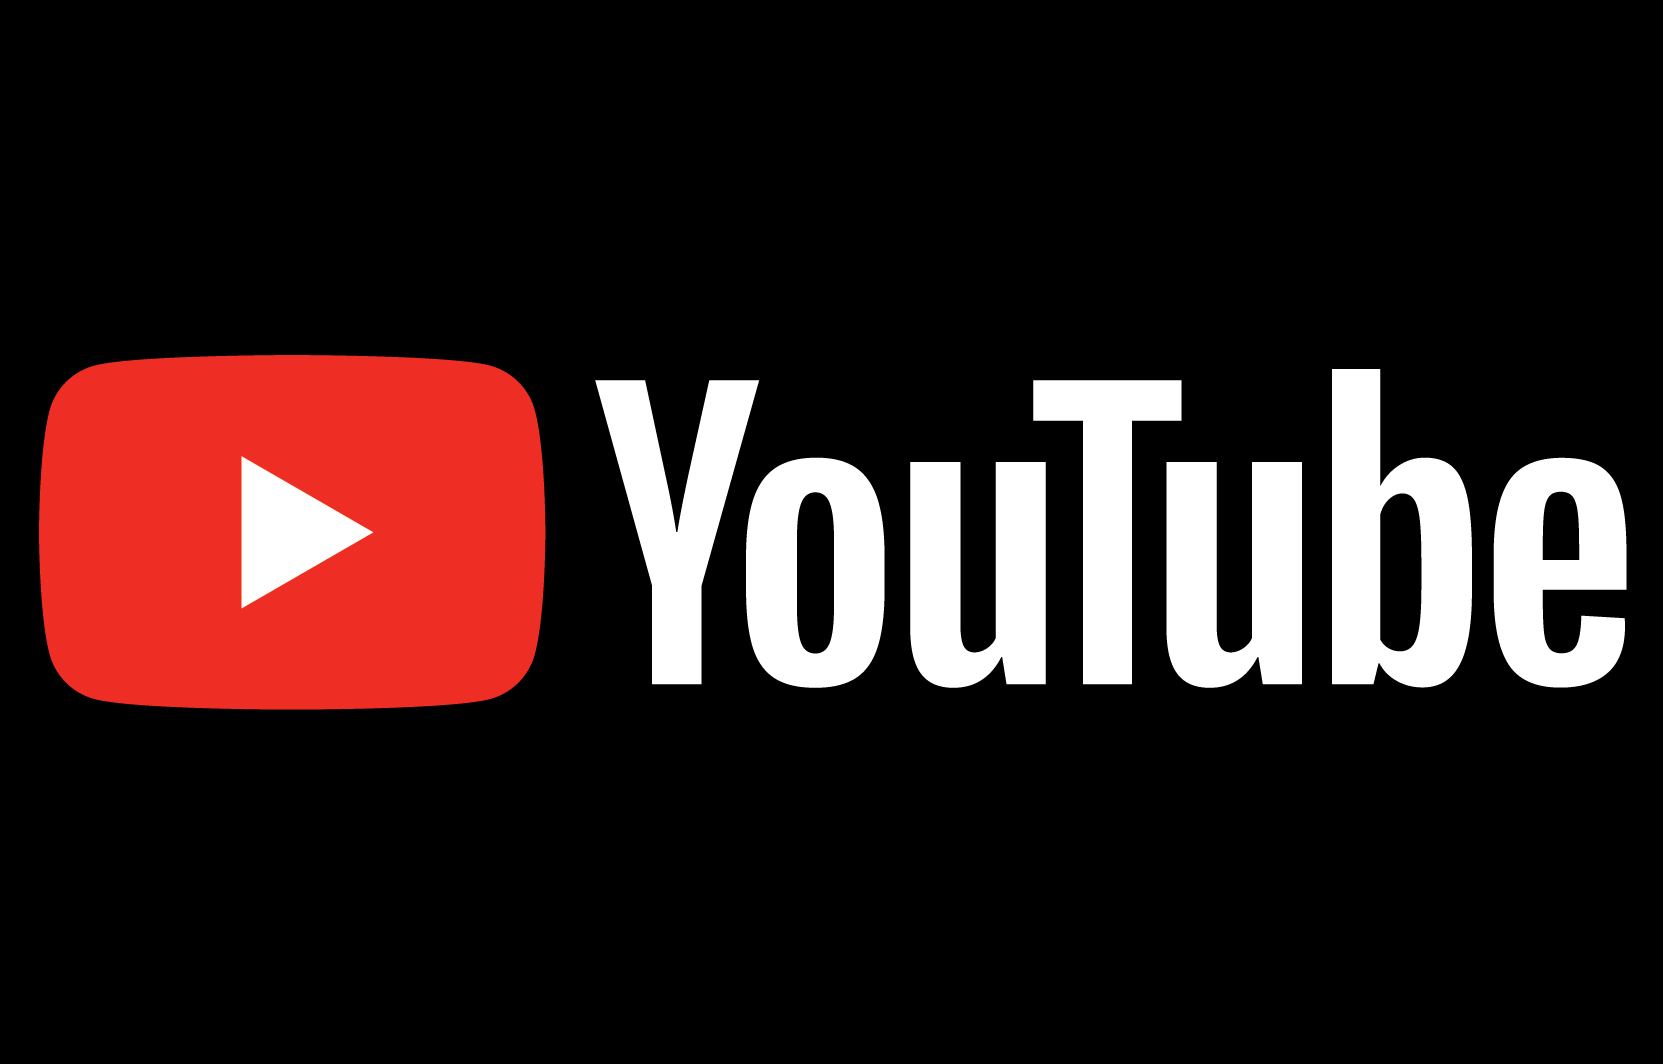 YouTube lettering and logo set against a dark background